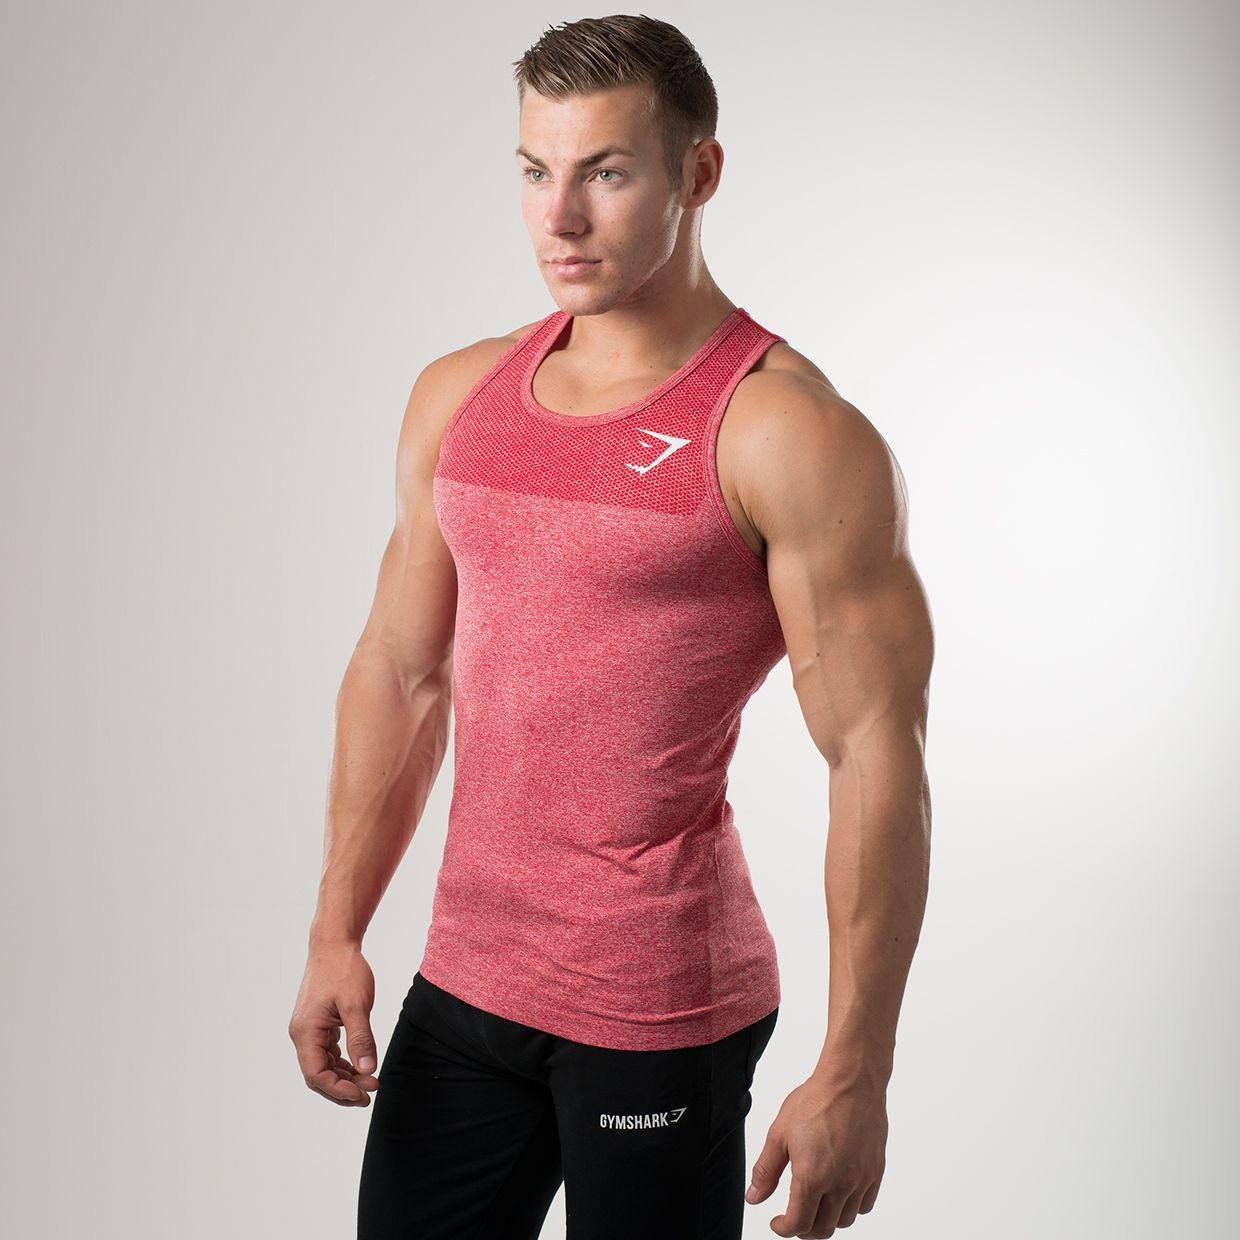 748b44b2e0dd1 The Gymshark Phantom Crimson Tank. Part of our Phantom Seamless range which  is the result of three generations of improvement of our Seamless  technology.